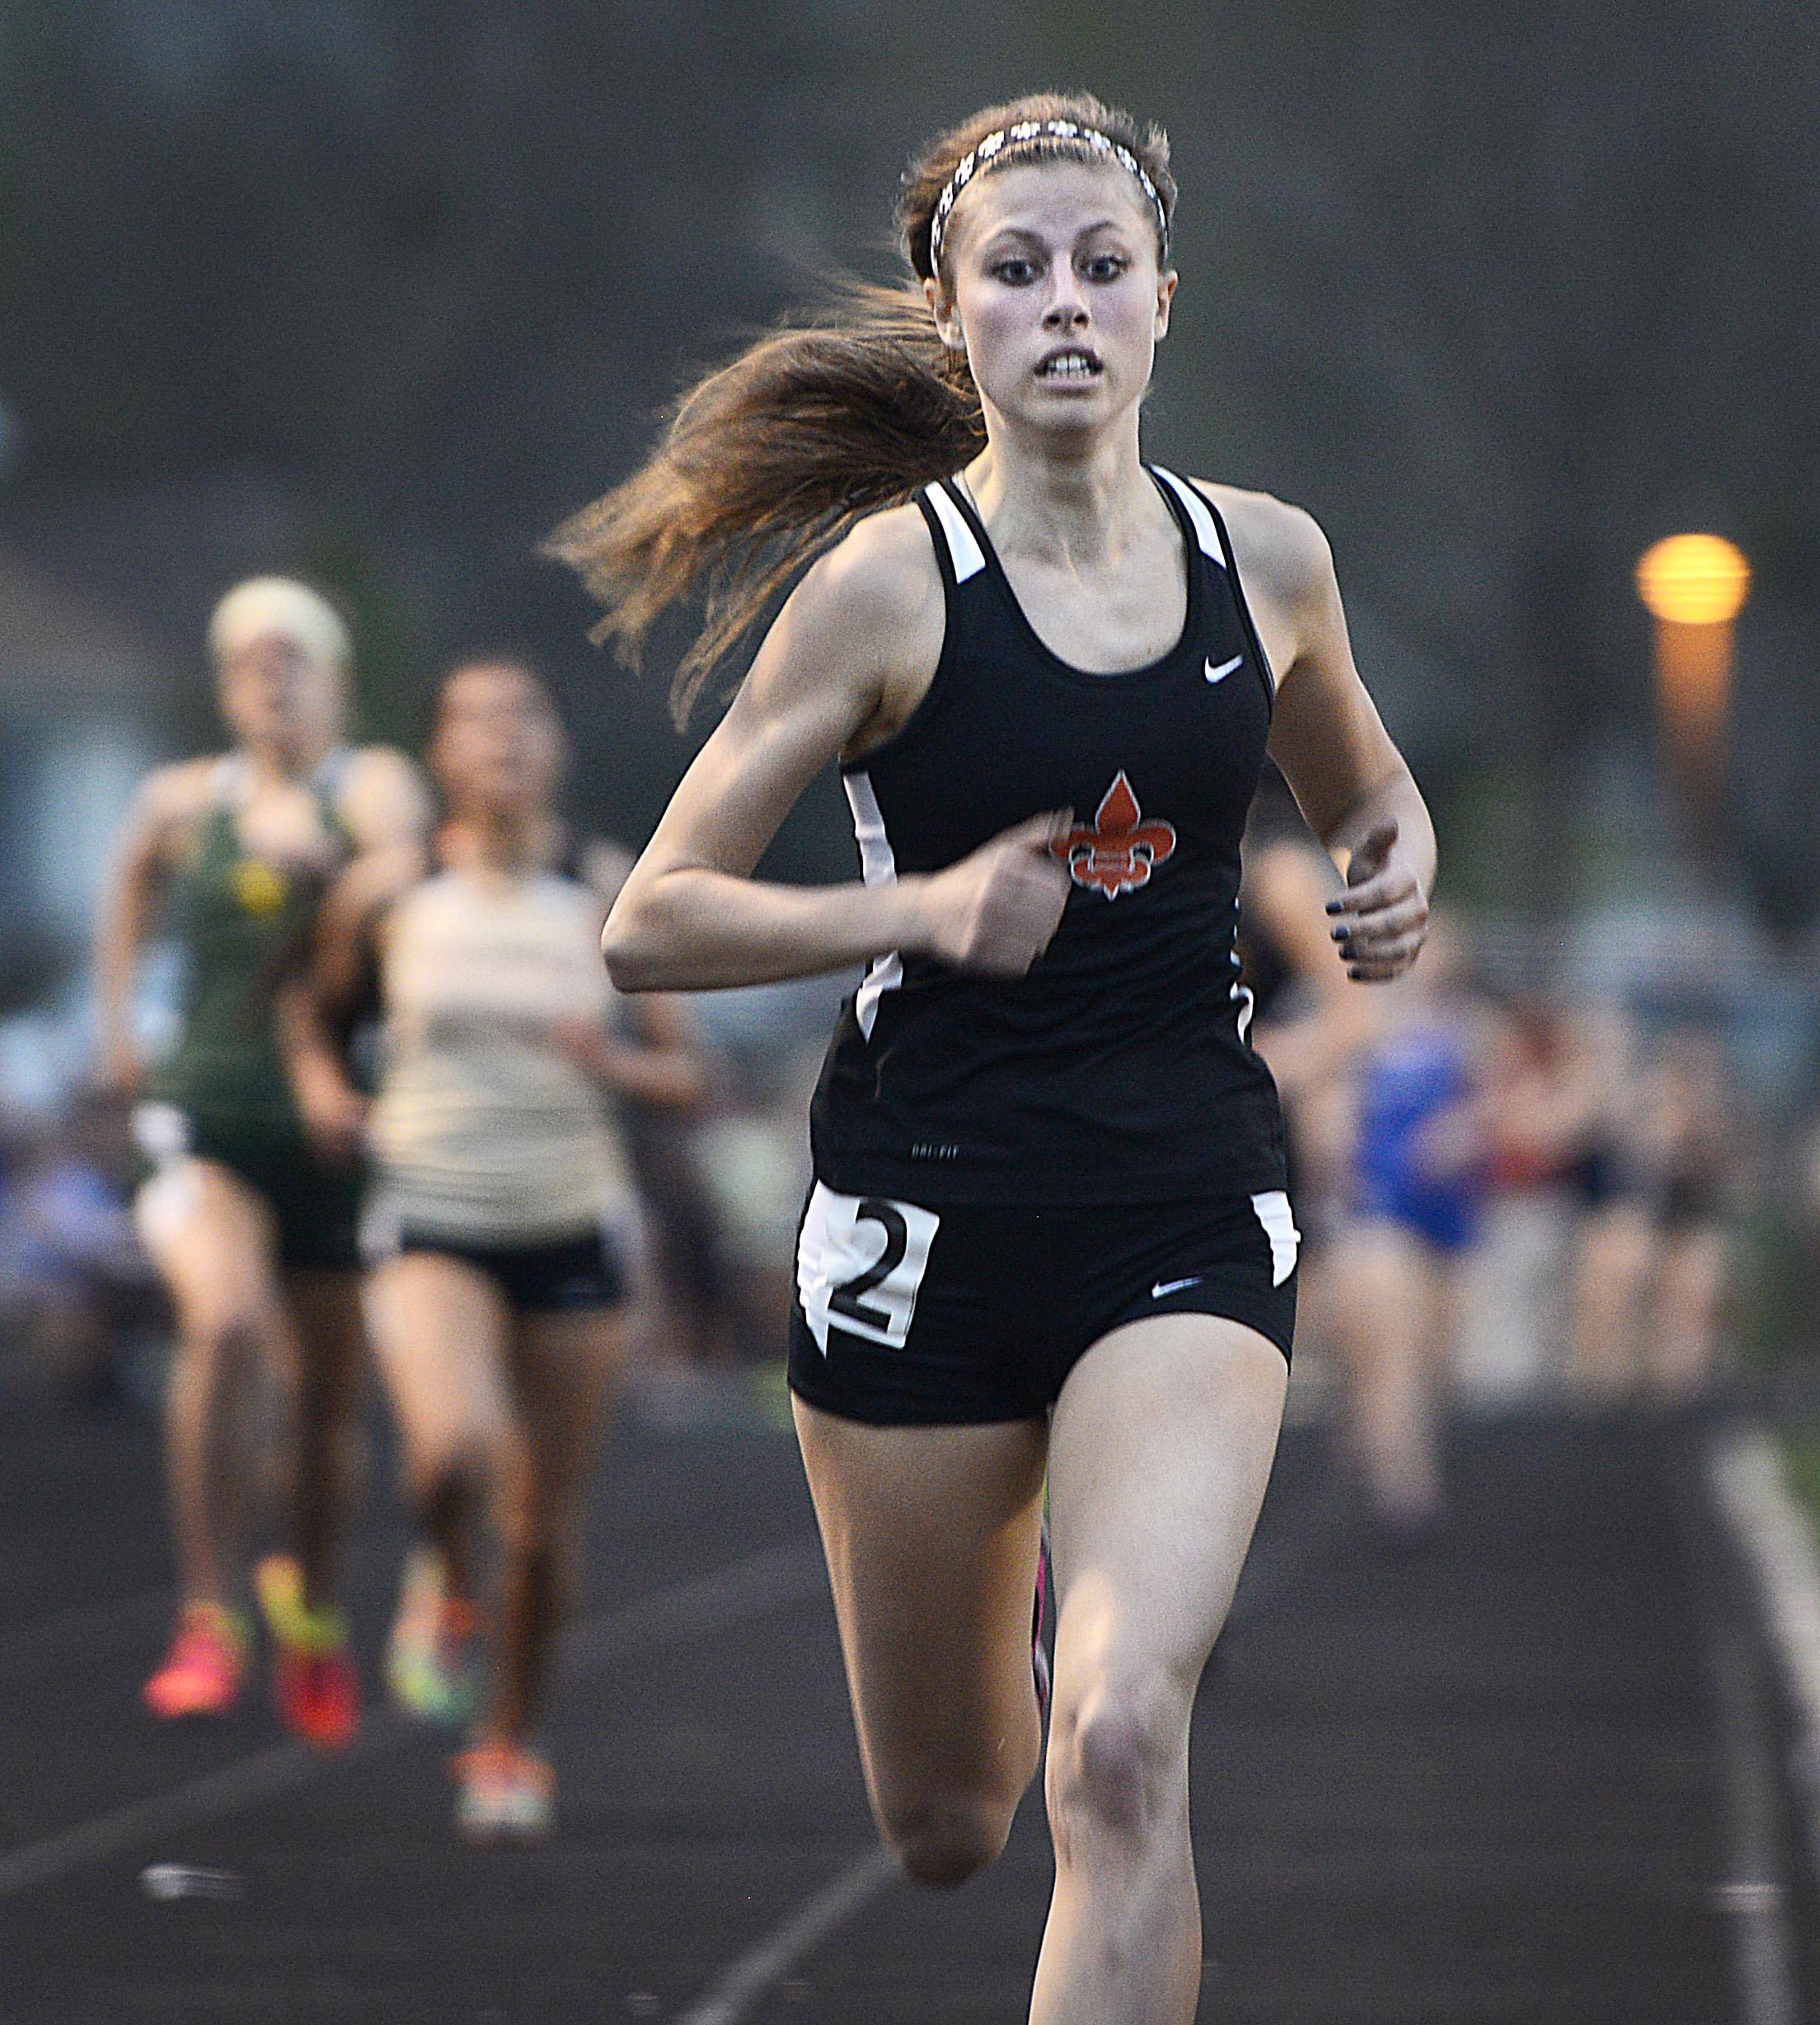 St. Charles East's Toree Scull wins the 1,600 meter run Thursday at the Upstate Eight Conference girls track meet at Geneva High School.